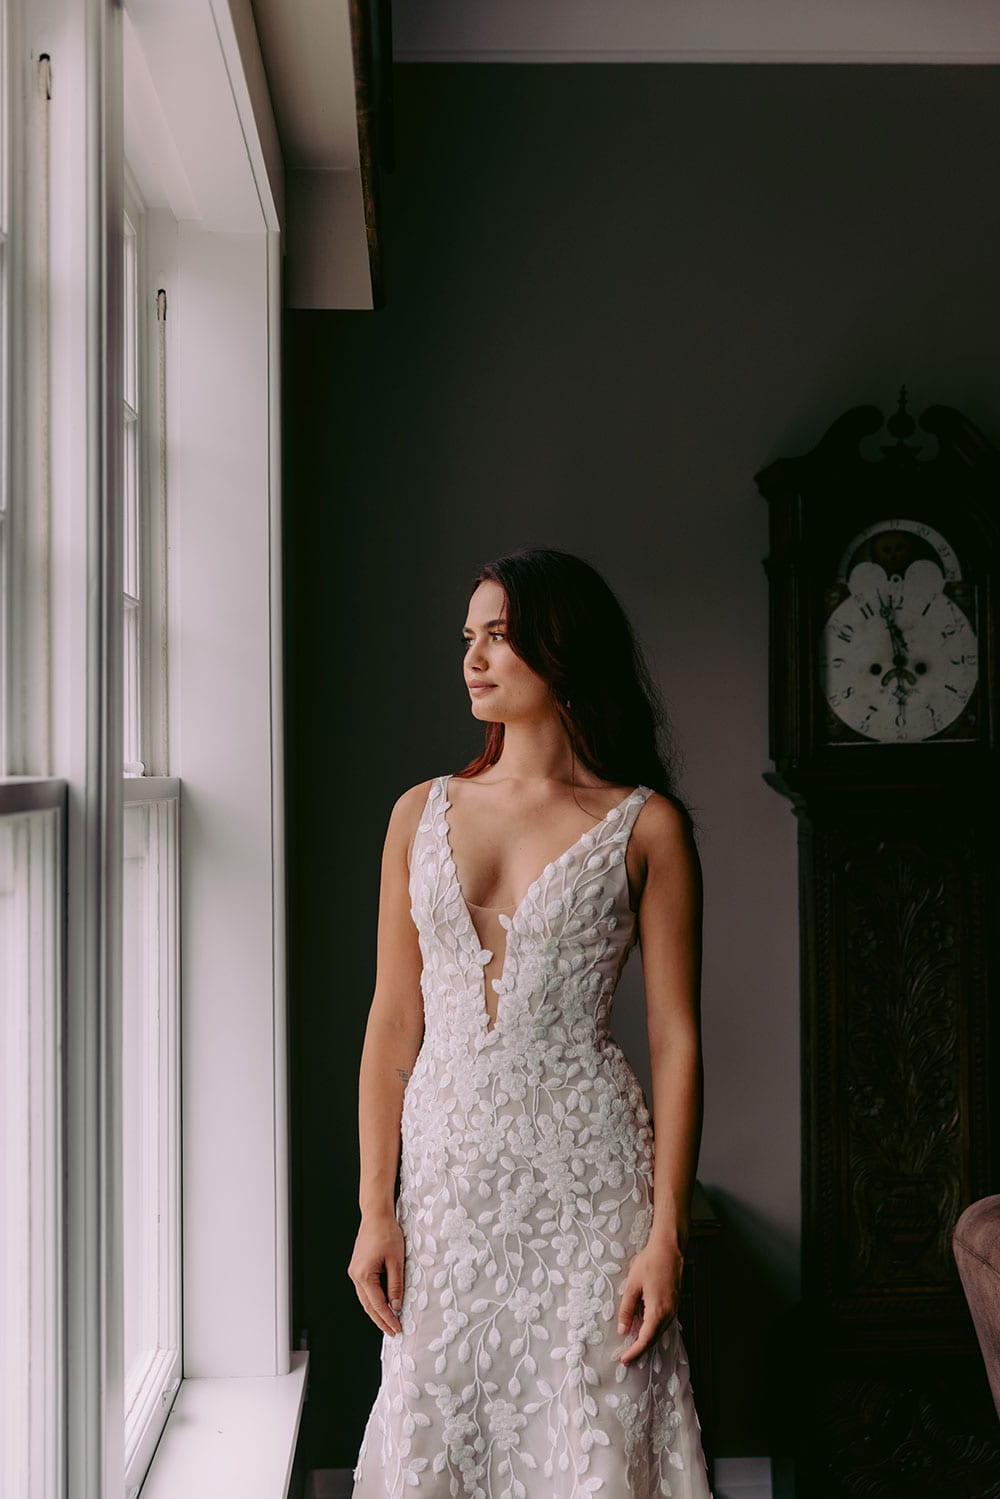 Fleur Wedding gown from Vinka Design - This gorgeous lace wedding dress is available in blush or ivory satin organza. Beautiful embroidered leaf lace, intricately cut and sewn by hand, adorn the bodice & straps and into a soft, flared train. Model wearing gown next to full windows highlighting dress.